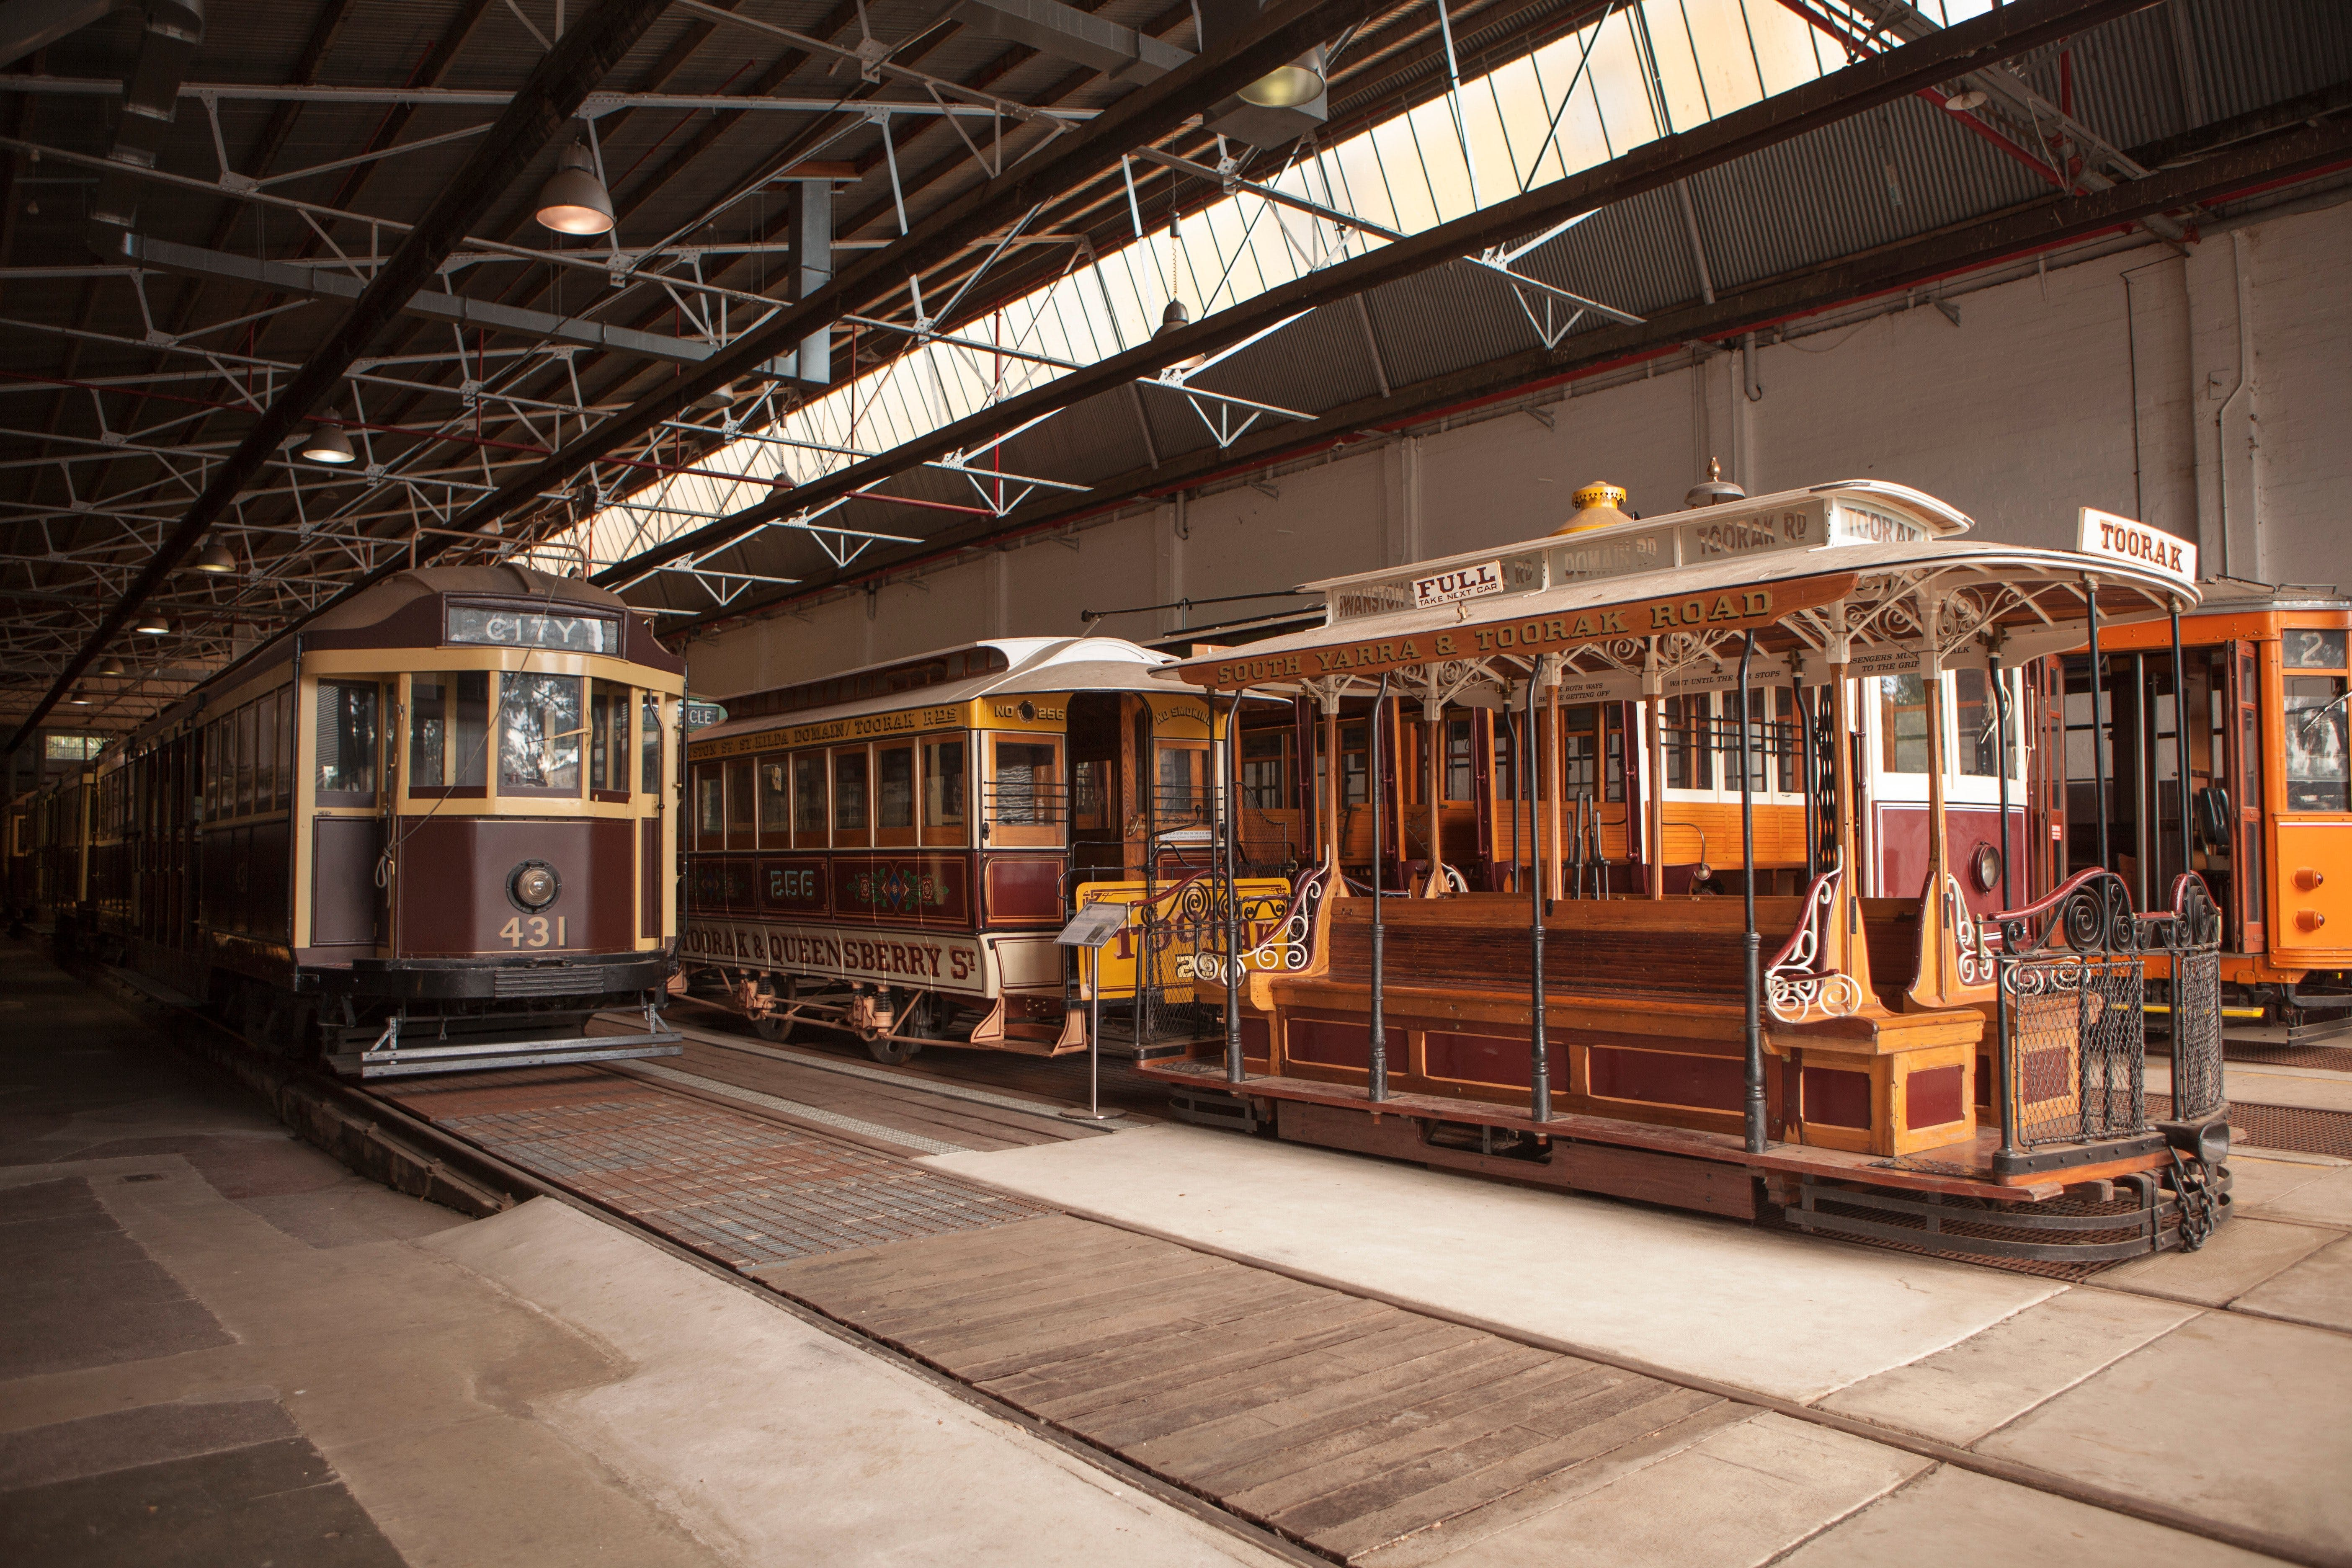 Melbourne Tram Museum - Accommodation Perth